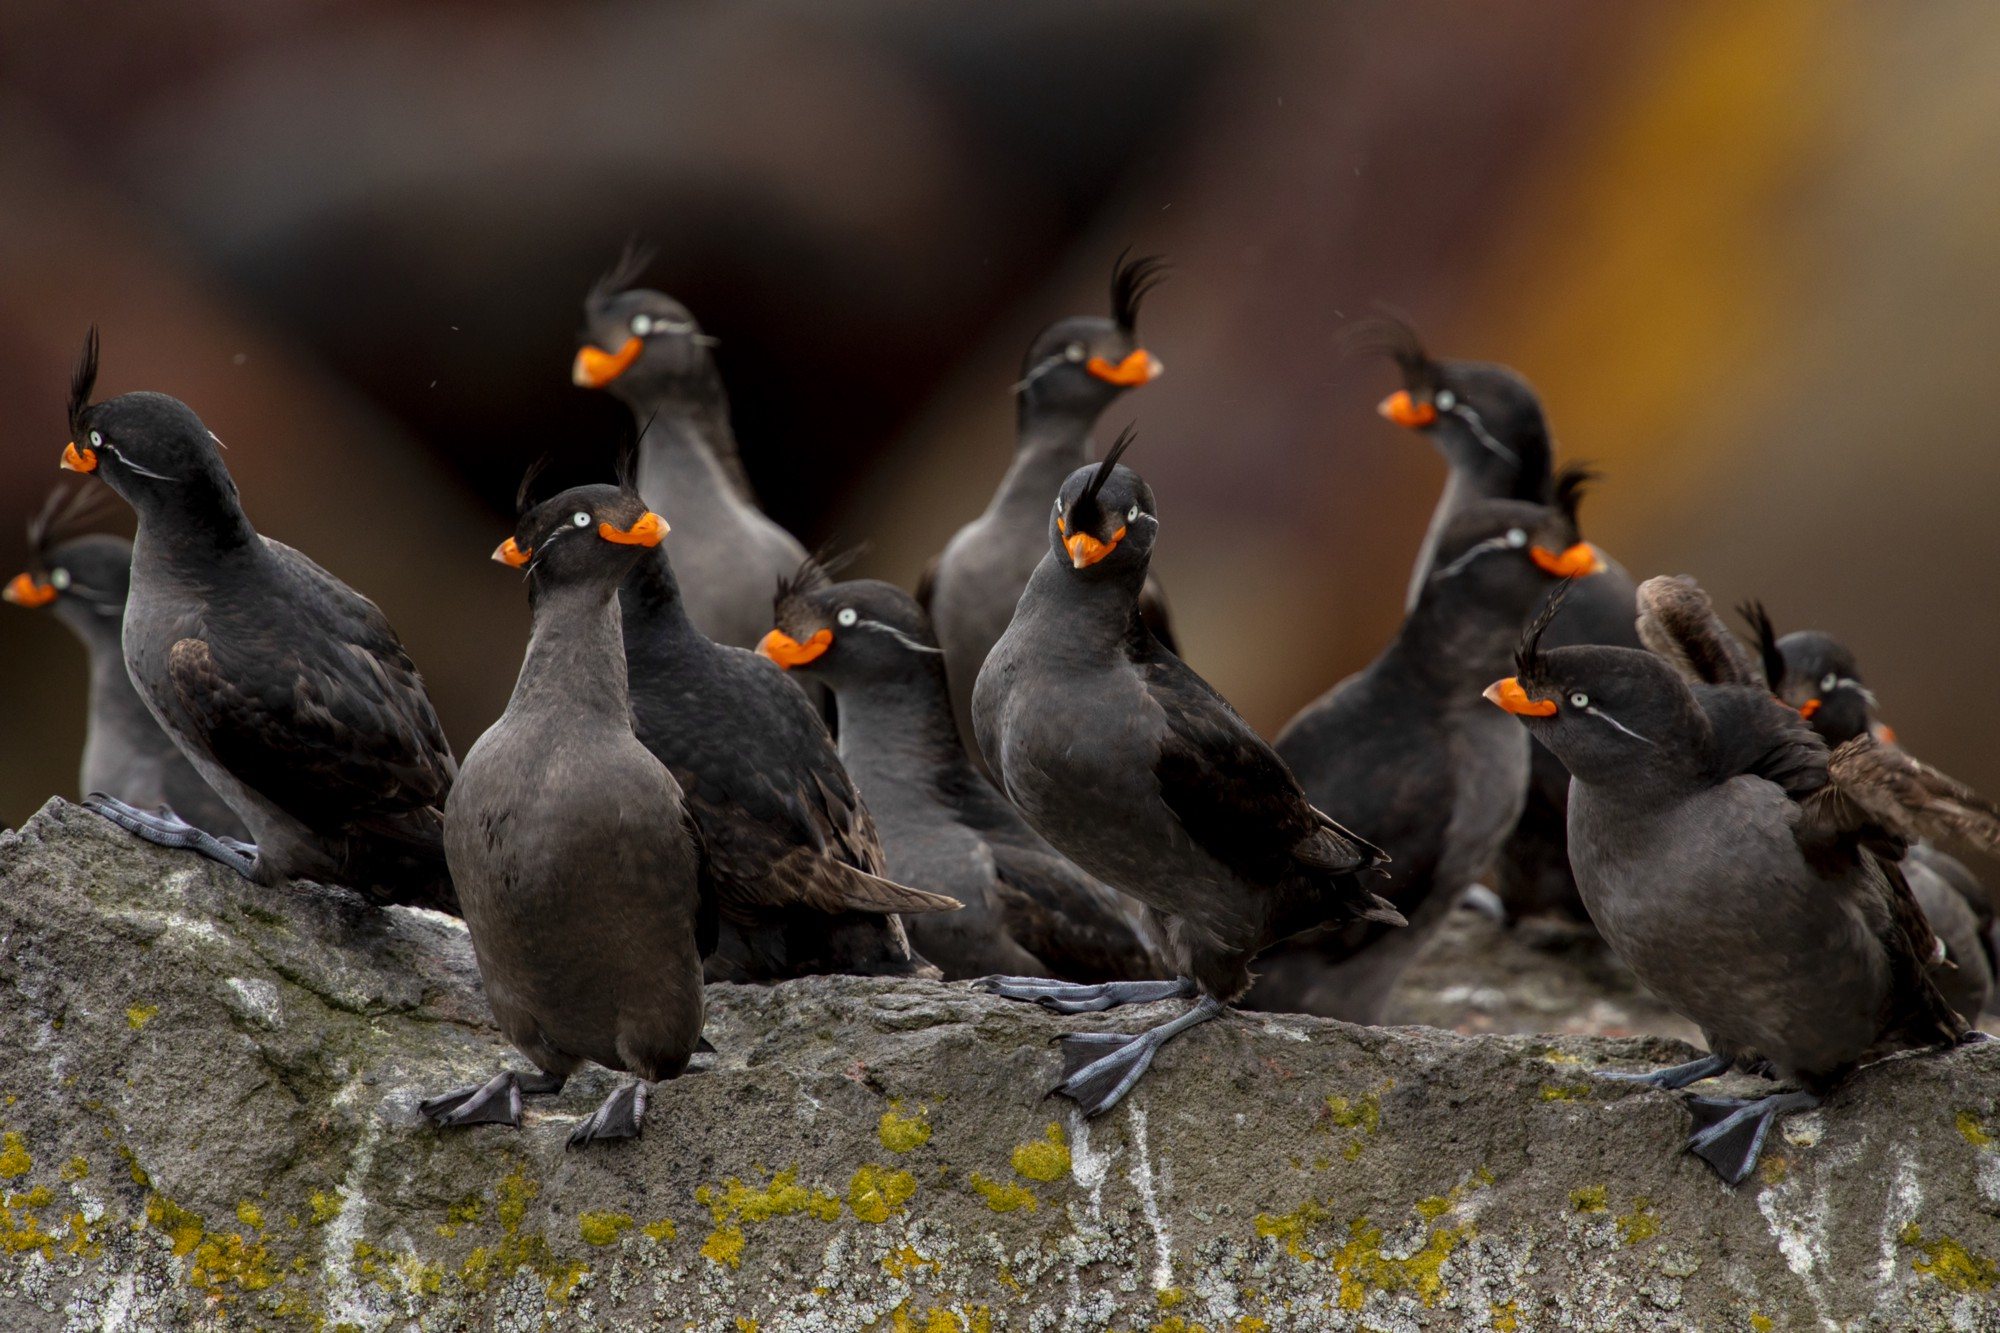 """A close up view of a group of black seabirds with bright orange beaks and feather """"crests"""" on their foreheads."""